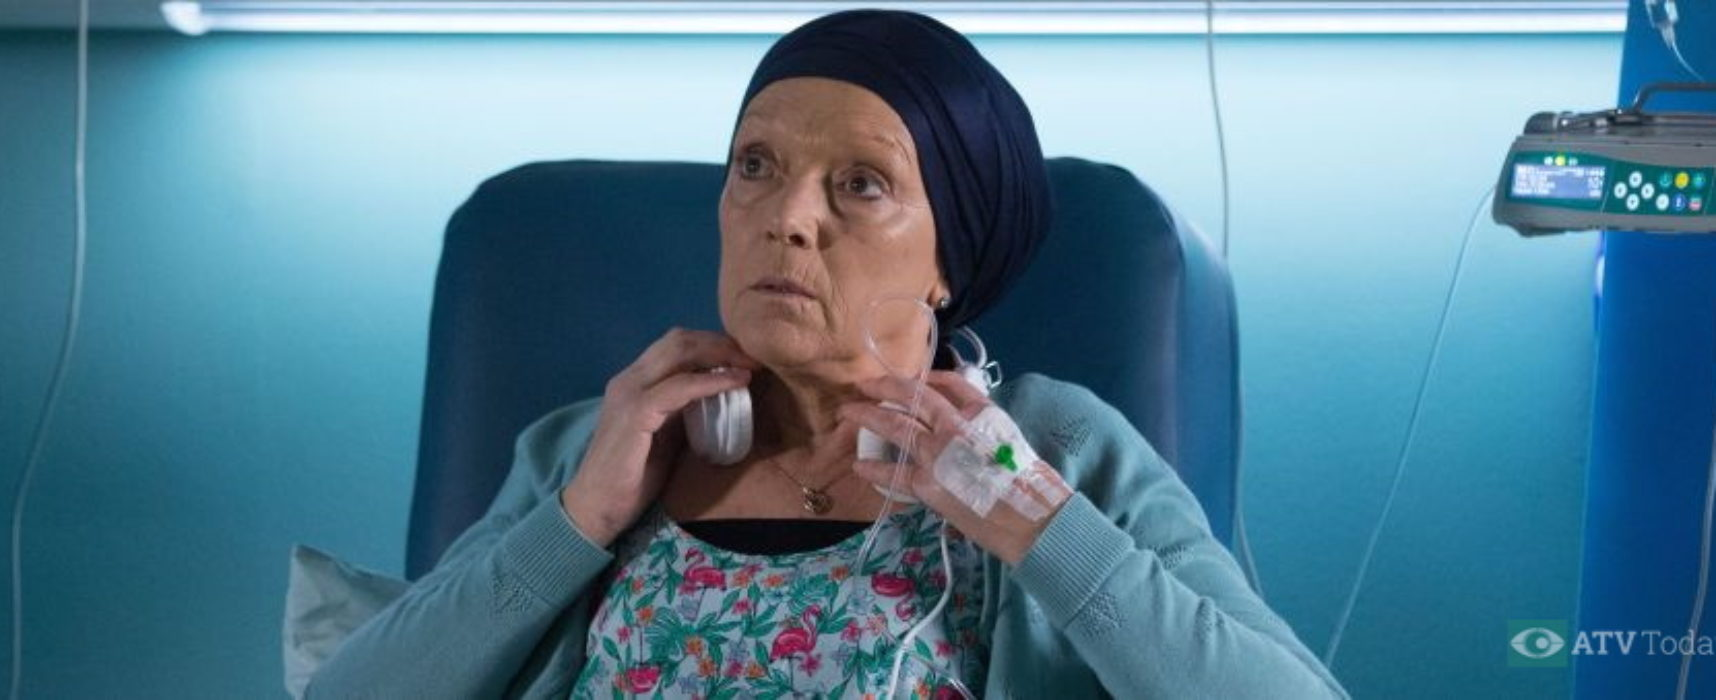 EastEnders' Gillian Wright reflects on cancer plot